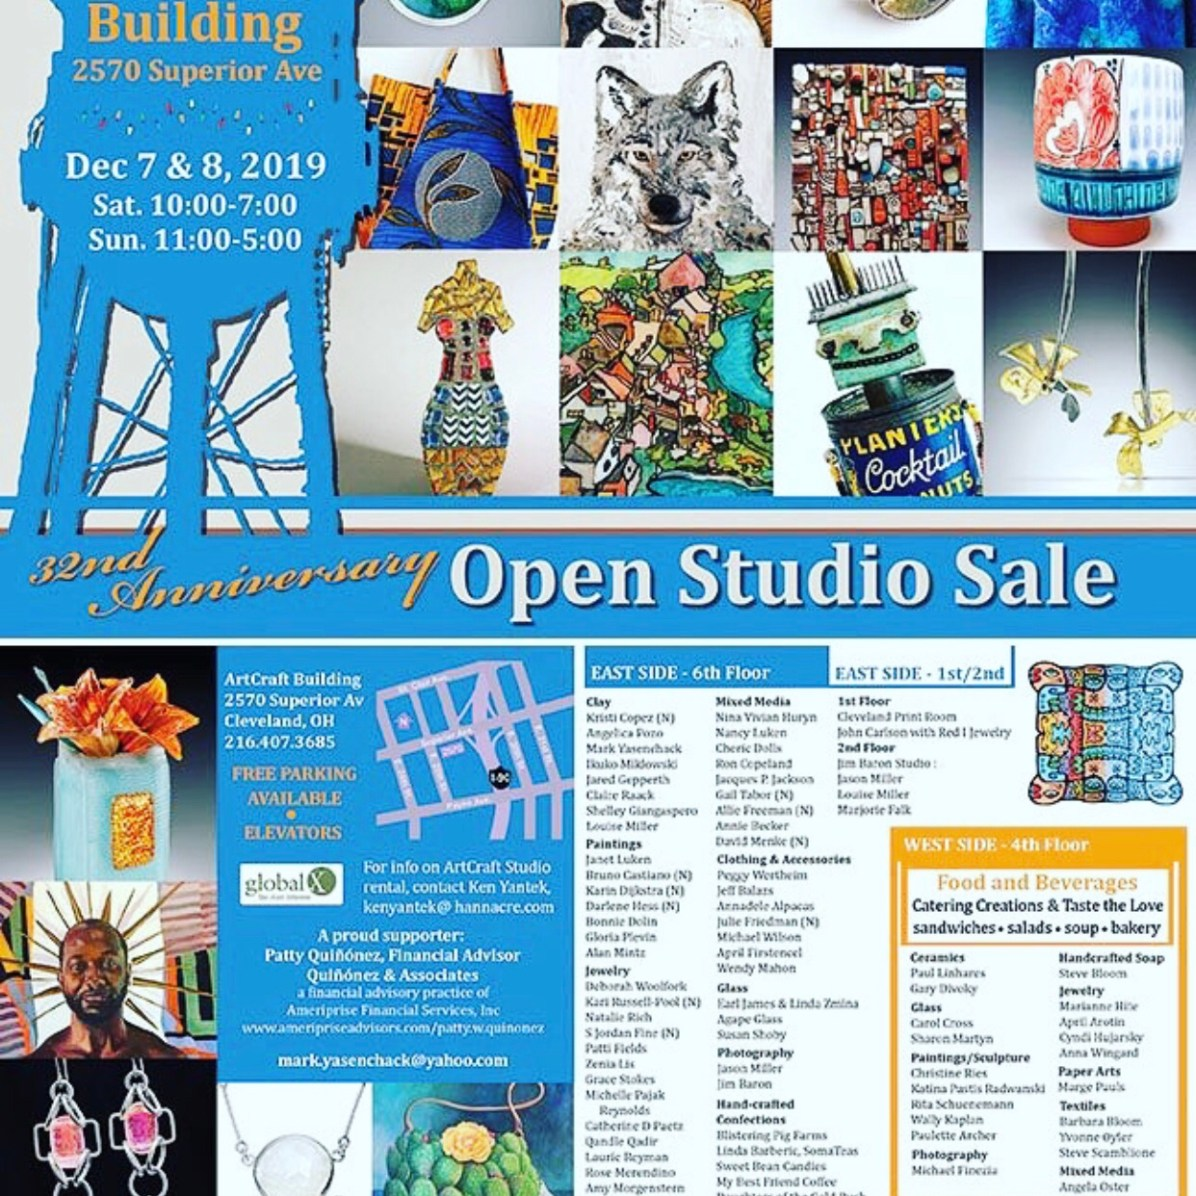 Our studio Sale - be sure to visit us on the west side of the Artcraft Building. We have a fabulous lineup of artists and a caterer in our studio (#402)